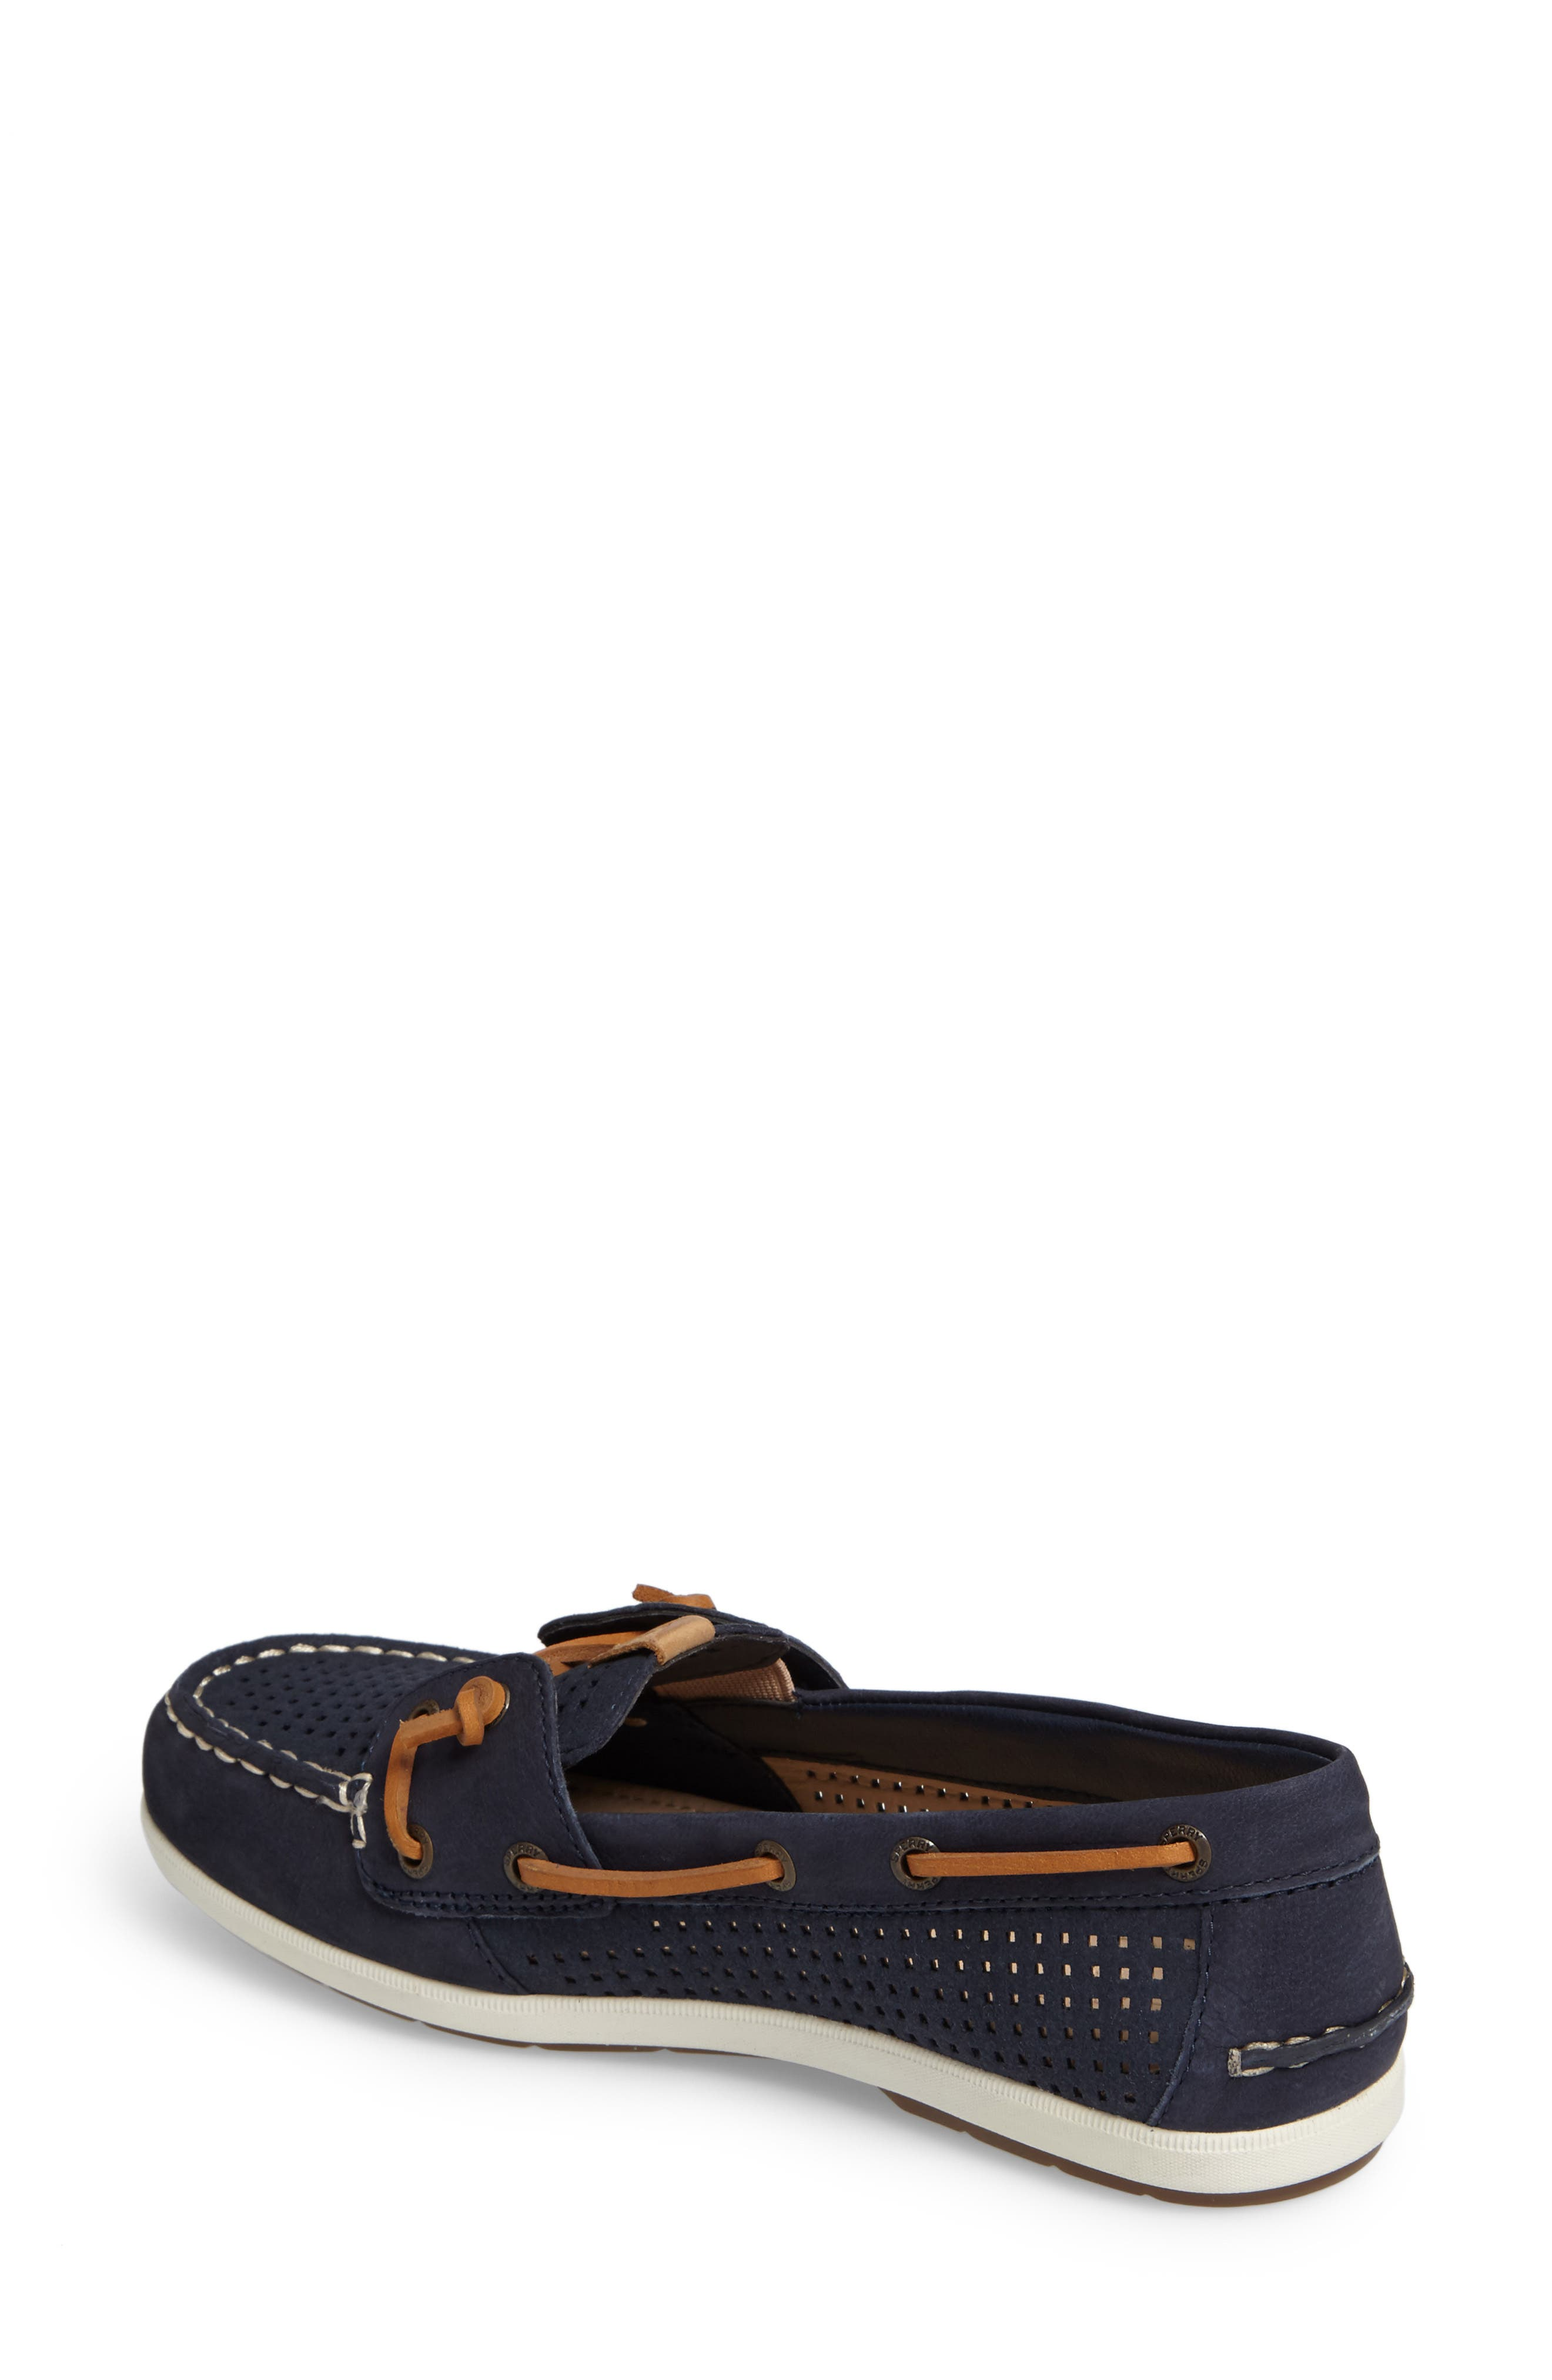 Coil Ivy Boat Shoe,                             Alternate thumbnail 2, color,                             Navy Leather